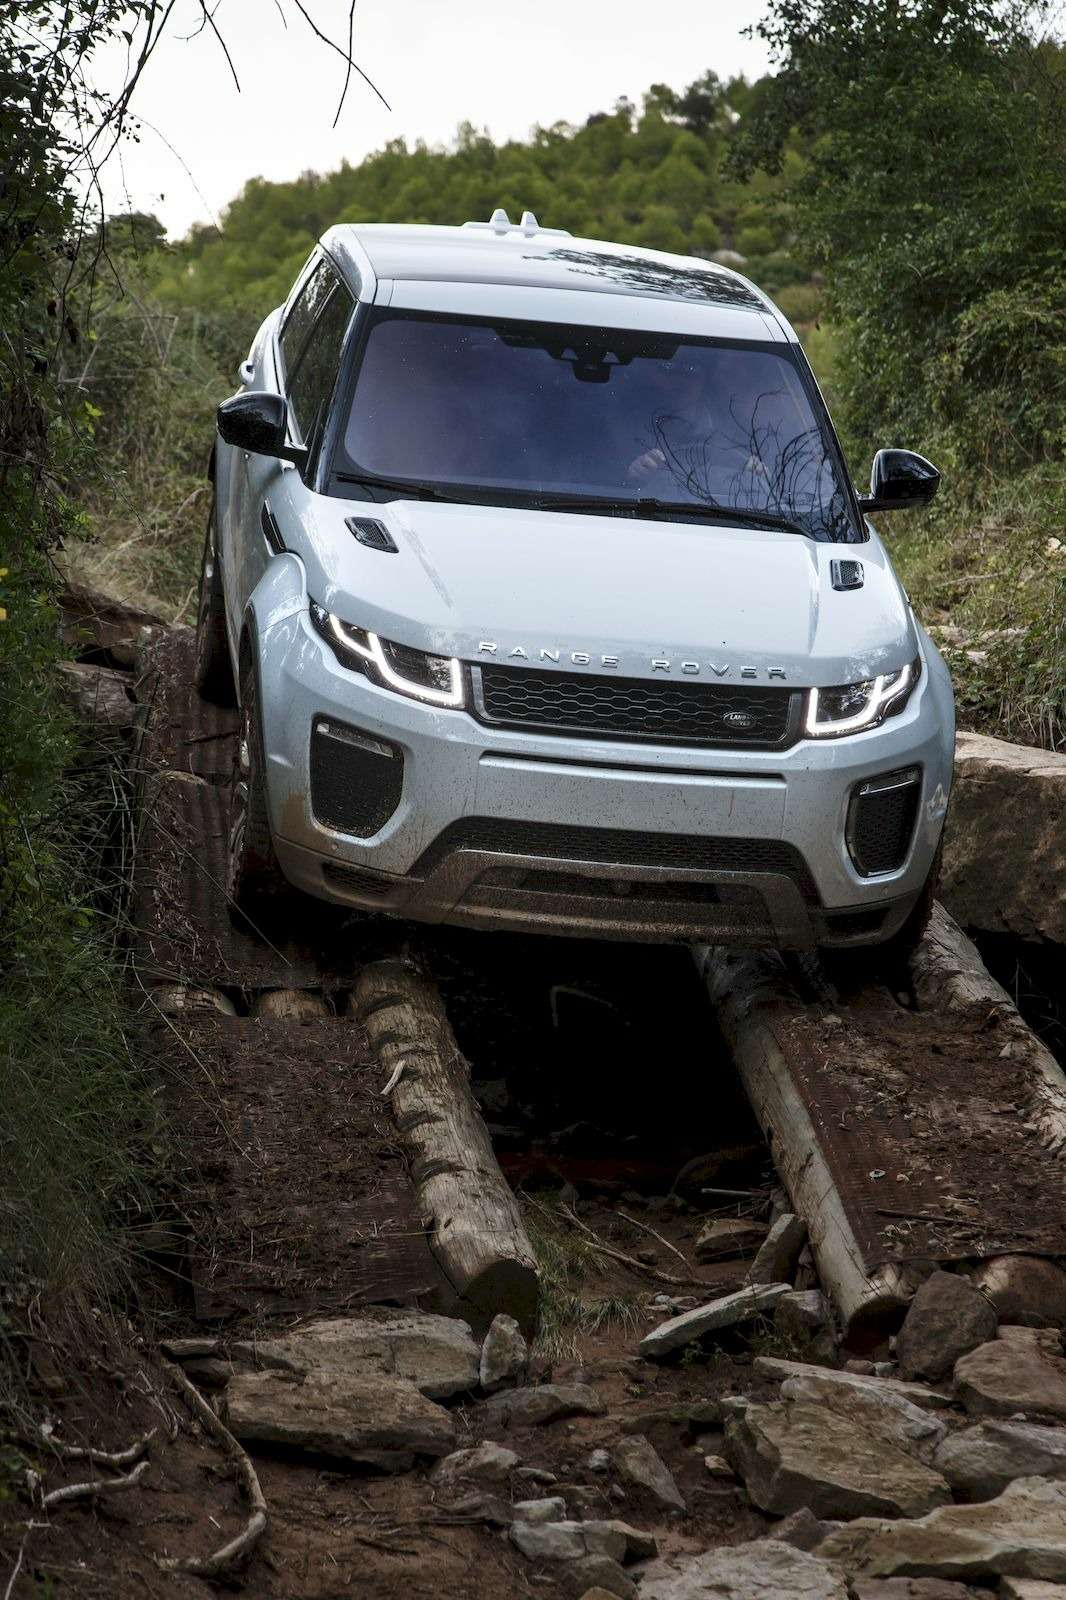 RR_Evoque16MY_4WD_131_result